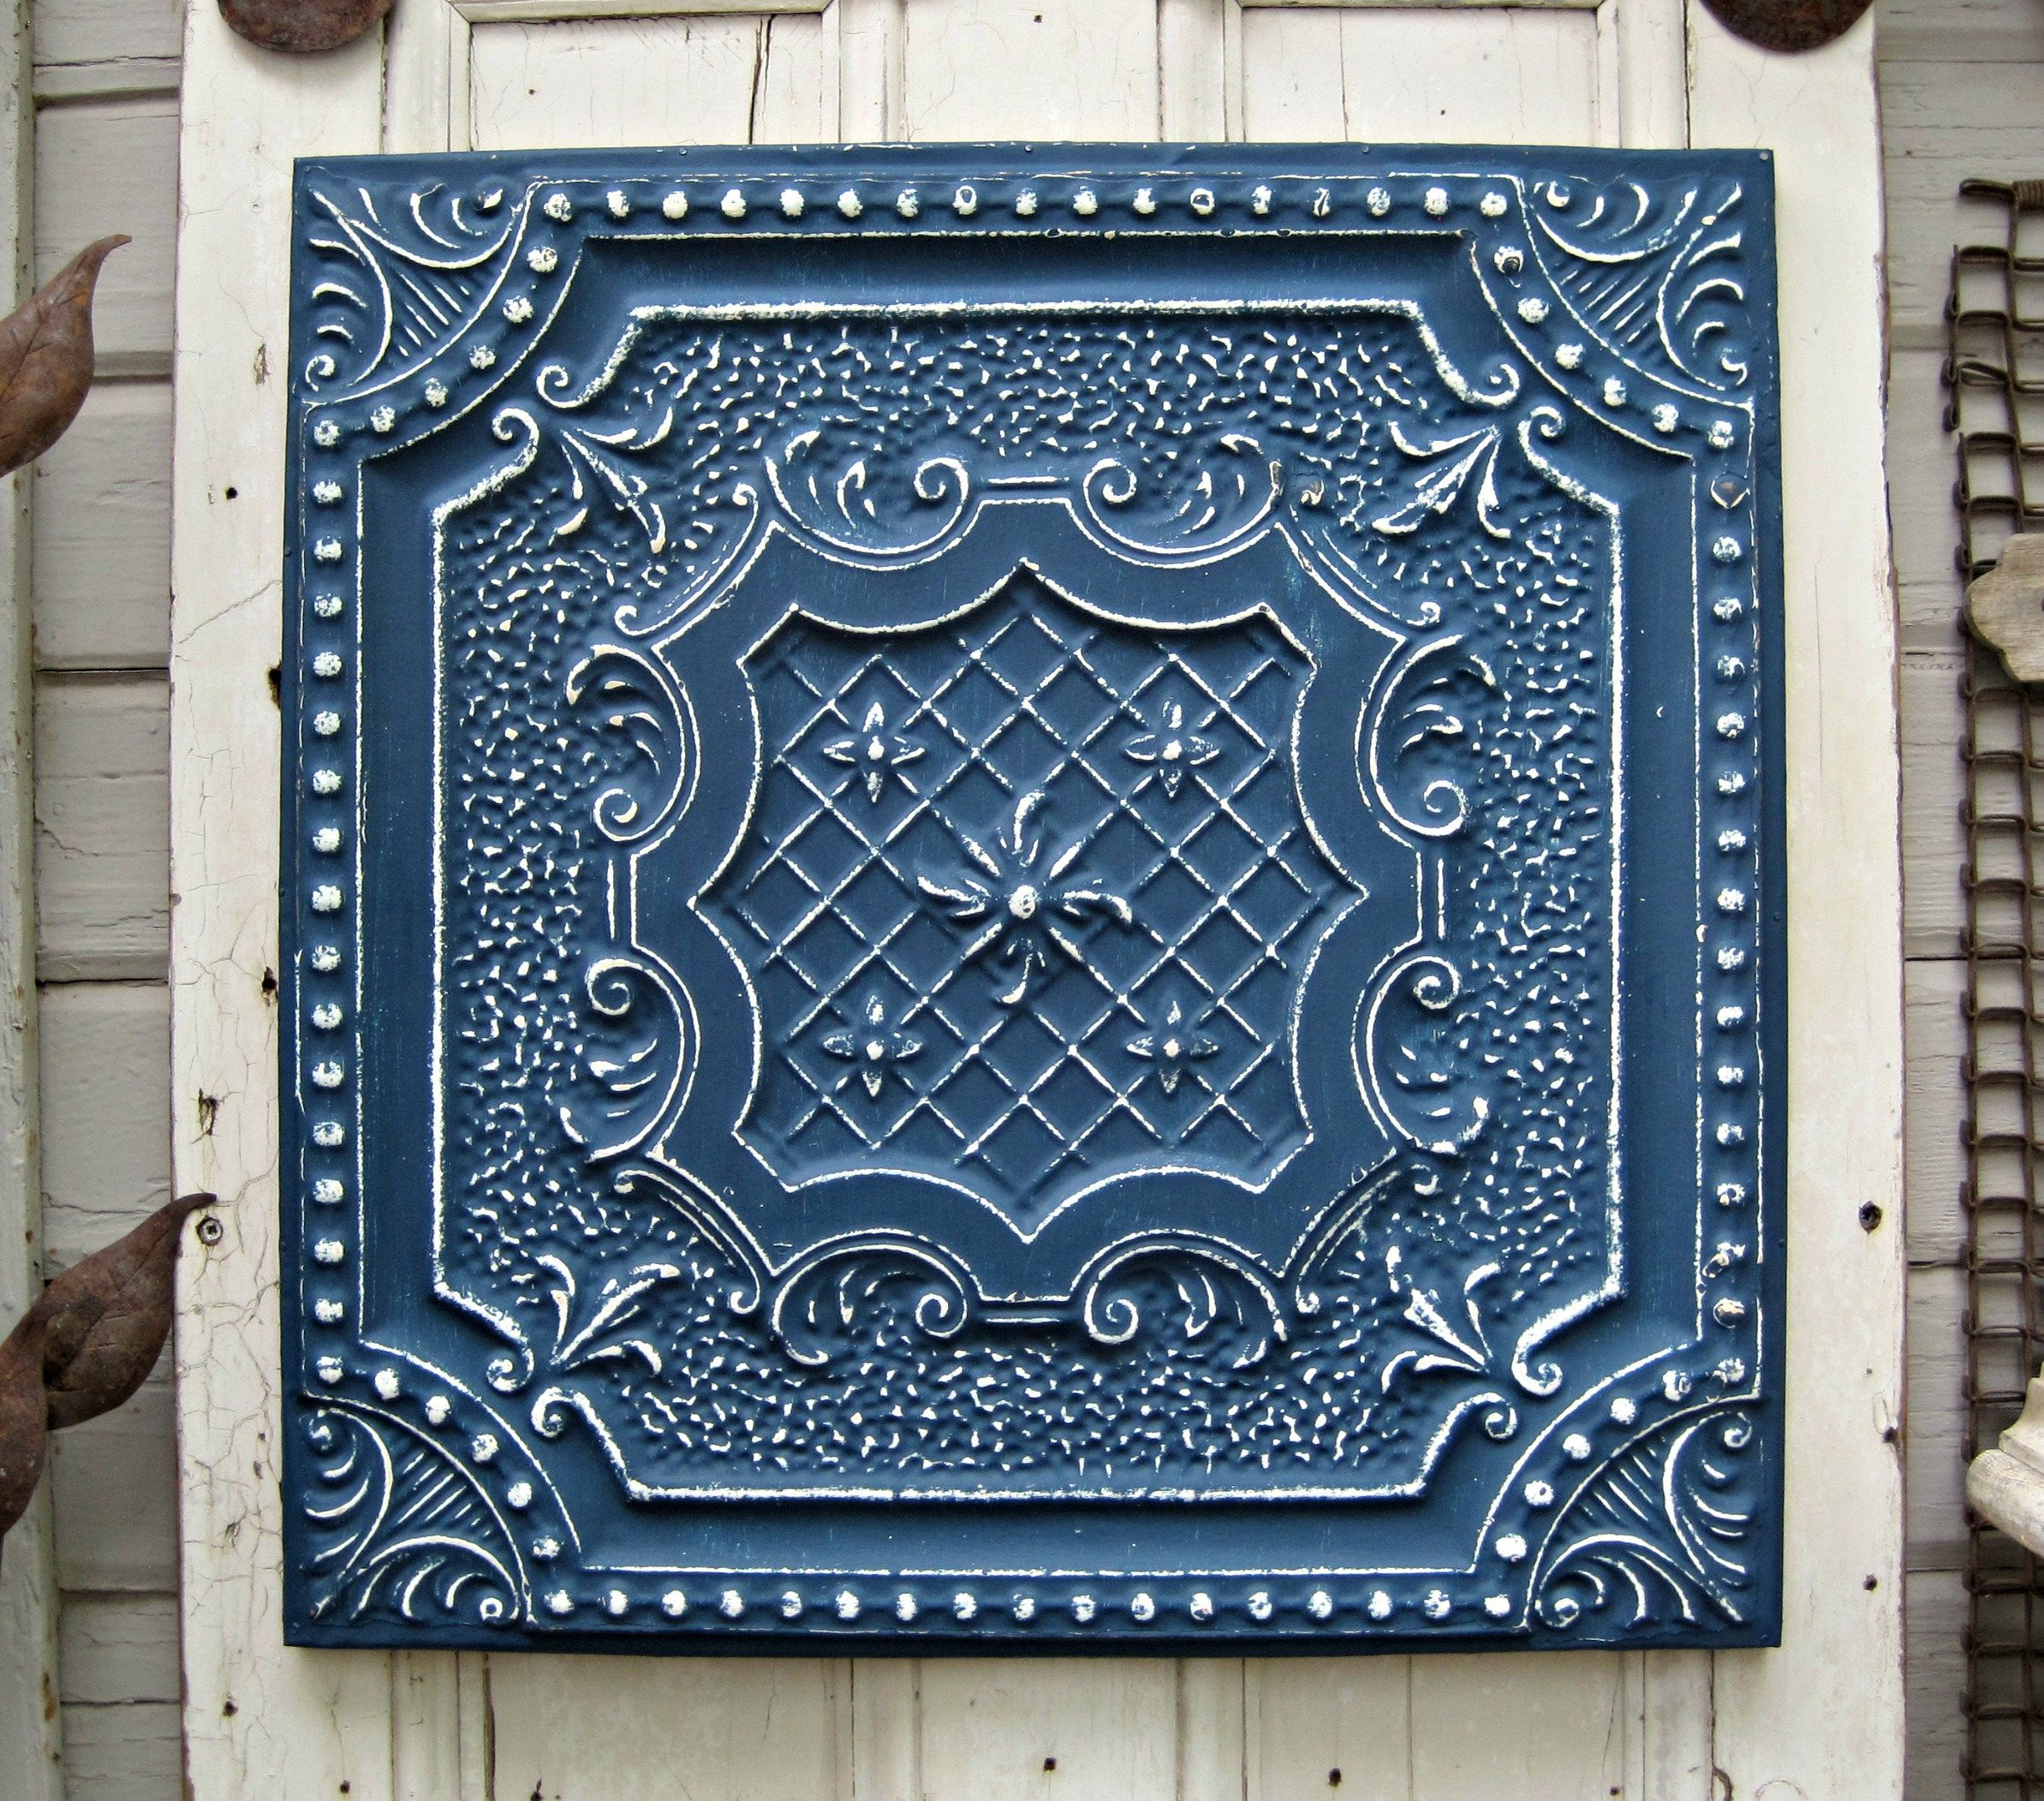 Tin Ceiling Tile, Texas Architectural salvage, Indigo blue, Navy ...